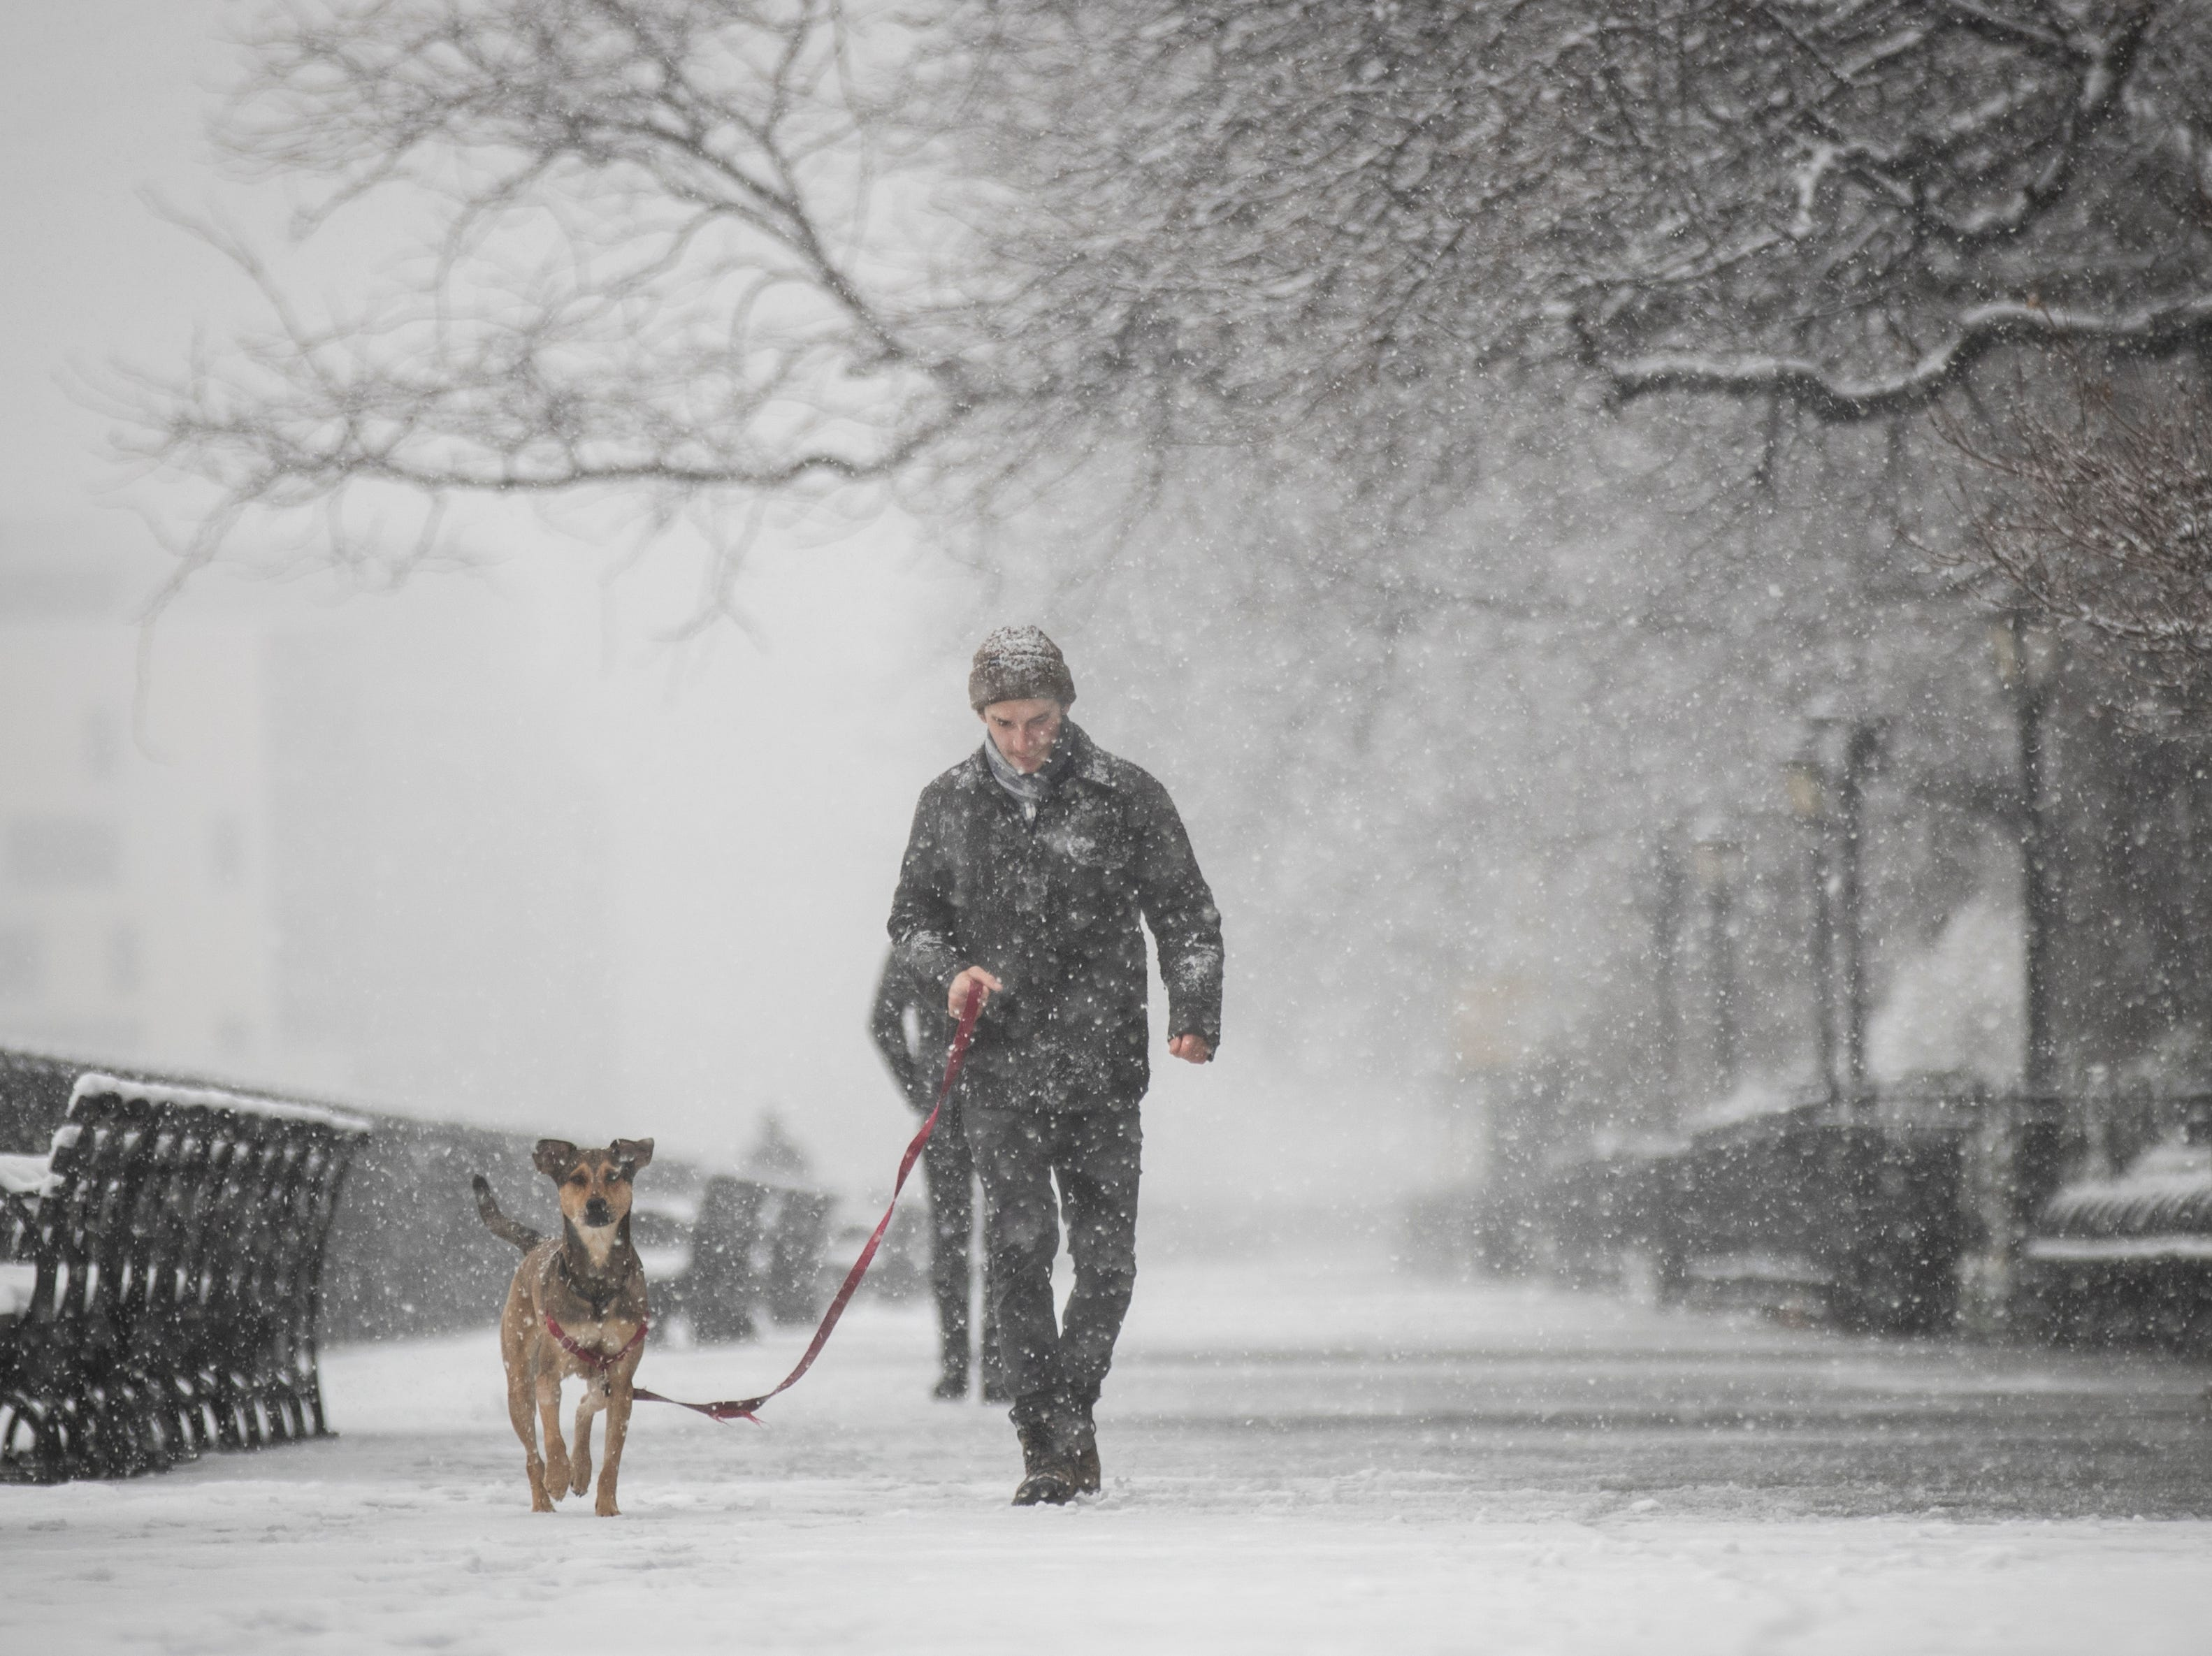 NEW YORK - APRIL 2: A man walk a dog in the snow on the Brooklyn Promenade, April 2, 2018 in the Brooklyn borough of New York City. One day after a mild Easter Sunday, yet another winter storm rolled into New York City overnight and into this morning. A winter weather advisory is in effect until 2pm and the city could see up to 4 inches of snow by midday before it changes over to rain. (Photo by Drew Angerer/Getty Images)